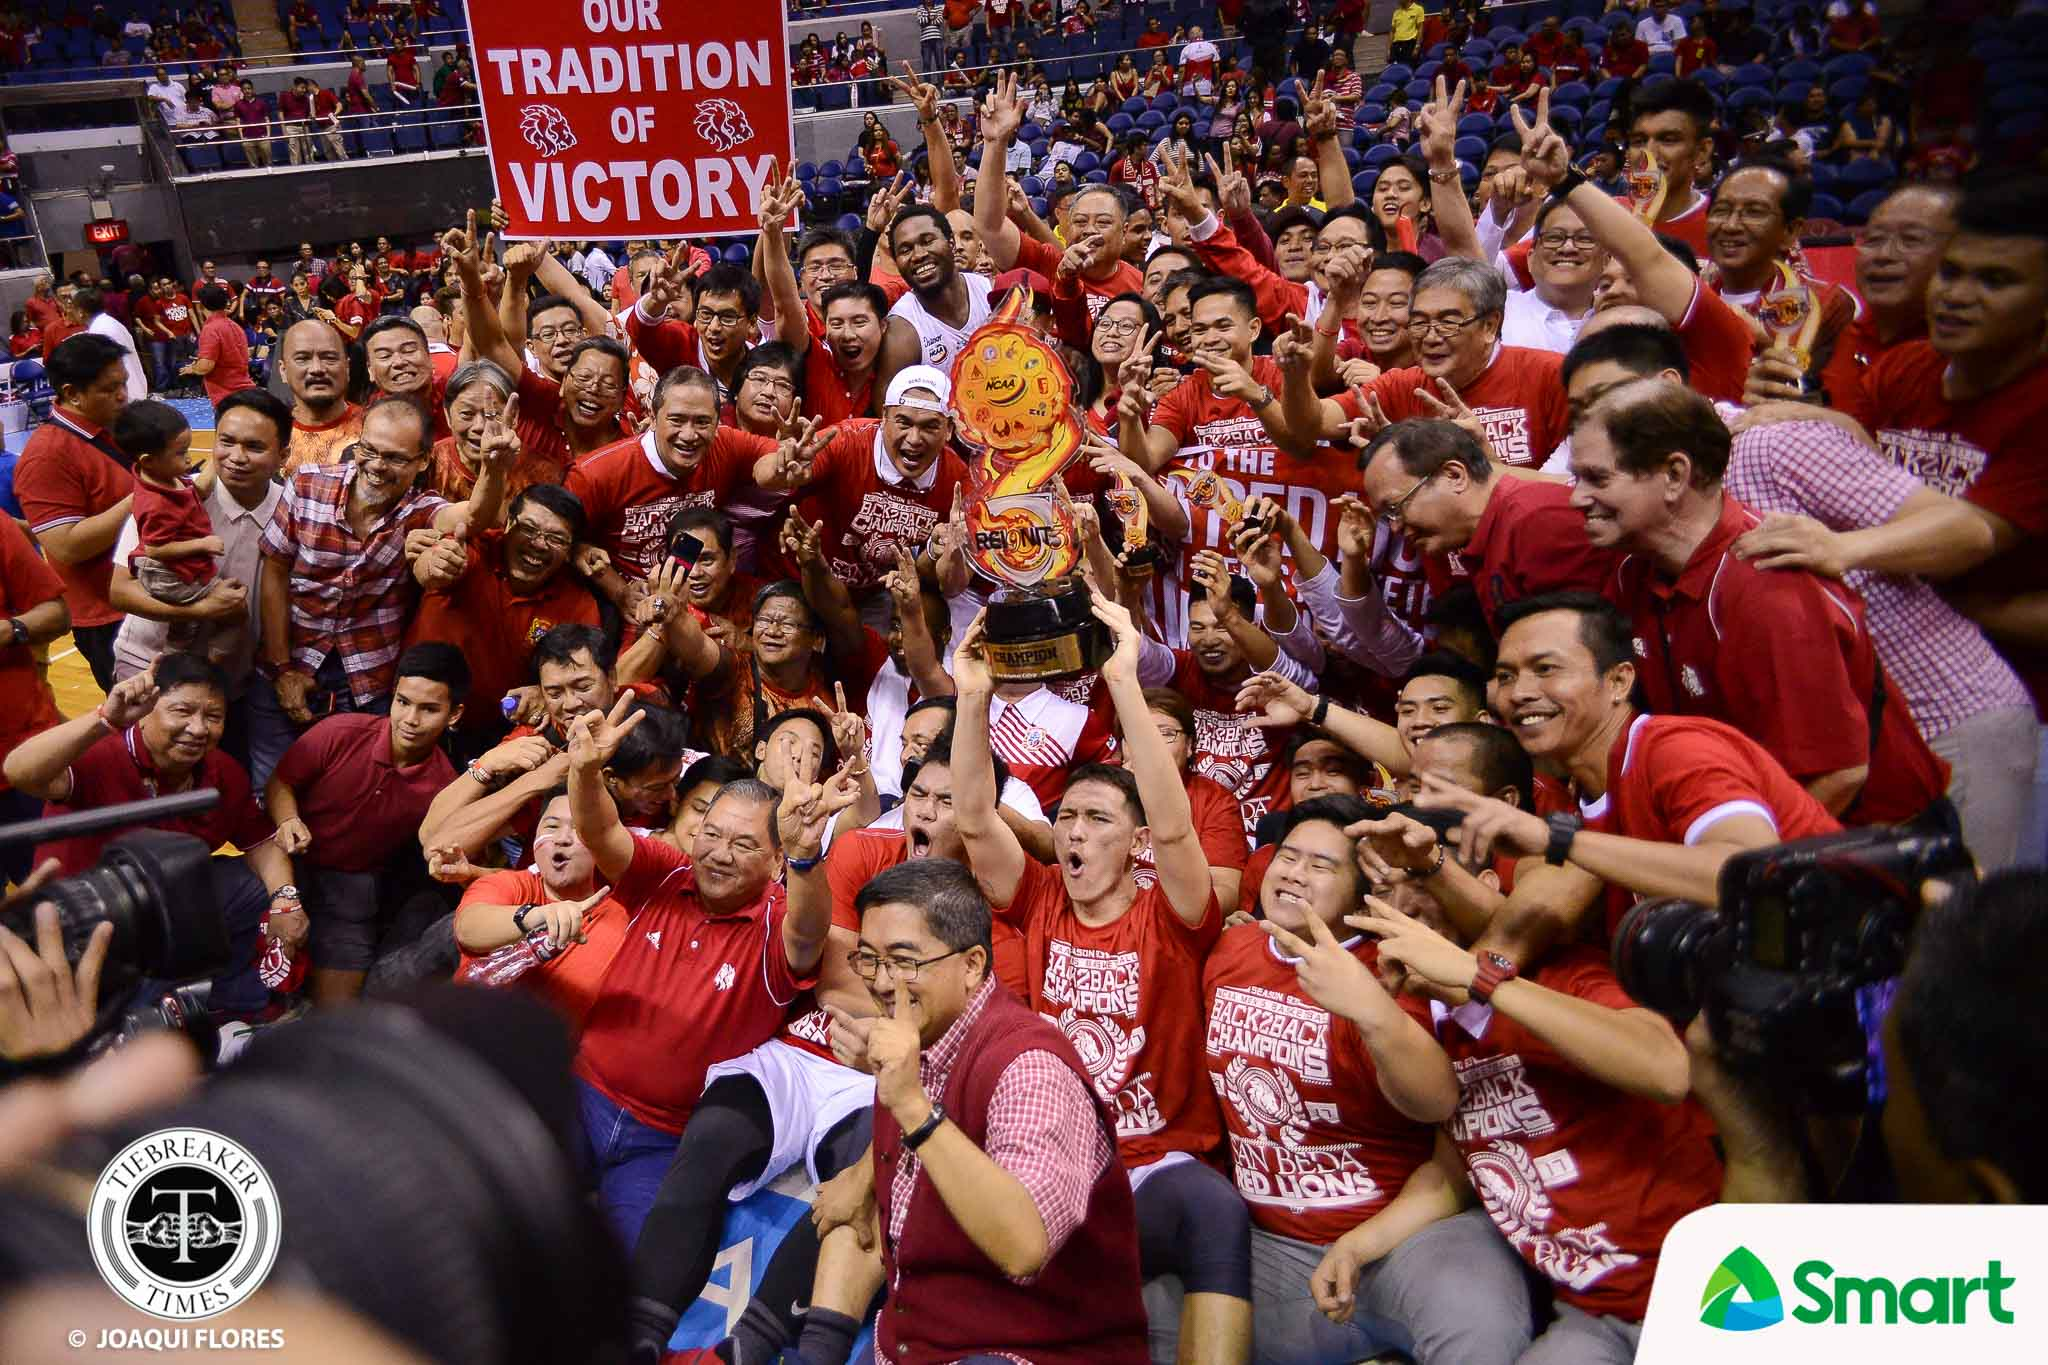 Philippine Sports News - Tiebreaker Times San Beda reloads for upcoming campaign and the future Basketball NCAA News SBC  Sean Garcia San Beda Seniors Basketball Prince Etrata Peter Alfaro NCAA Season 94 Seniors Basketball NCAA Season 94 Jude Roque Joshua Tagala James Canlas Evan Nelle Damie Cuntapay Carlo Obenza Alex Visser